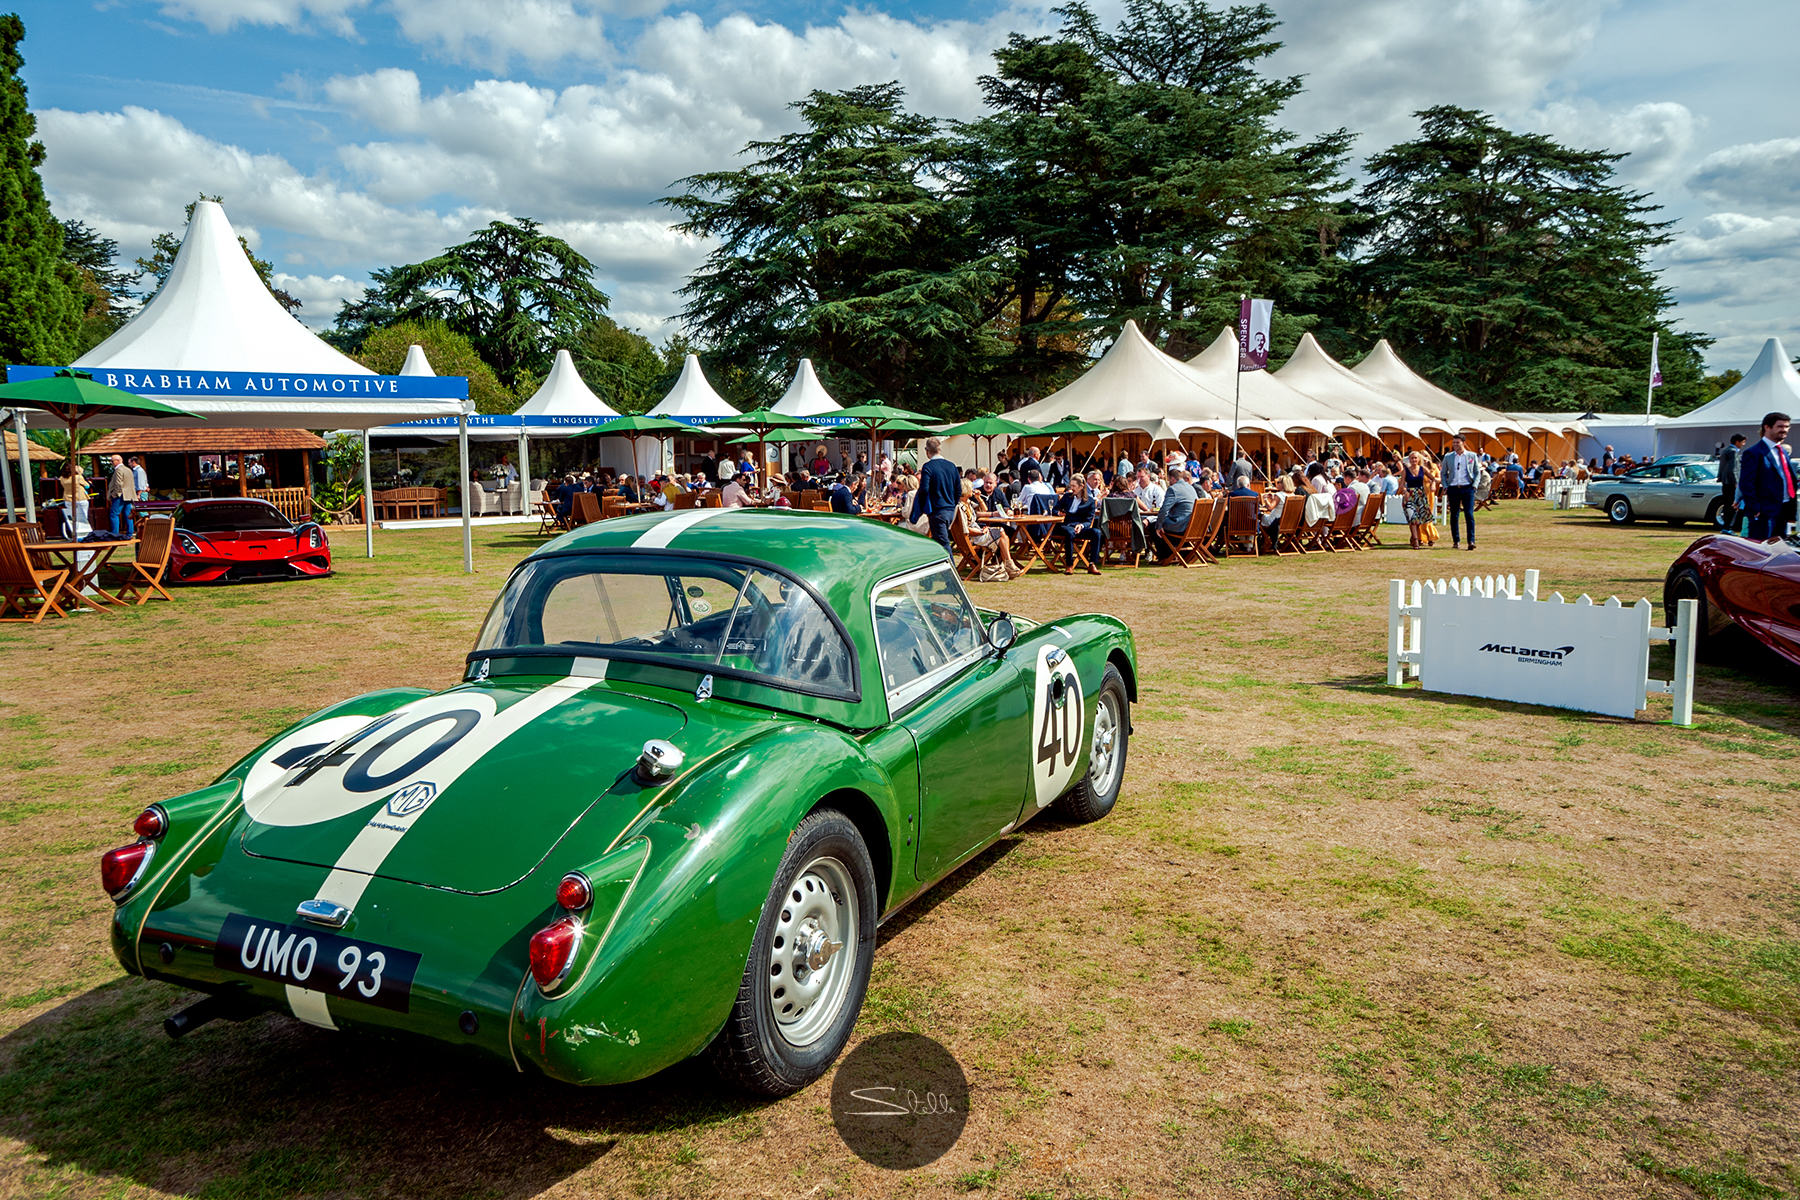 Stella Scordellis Salon Prive 2018 50 Watermarked.jpg